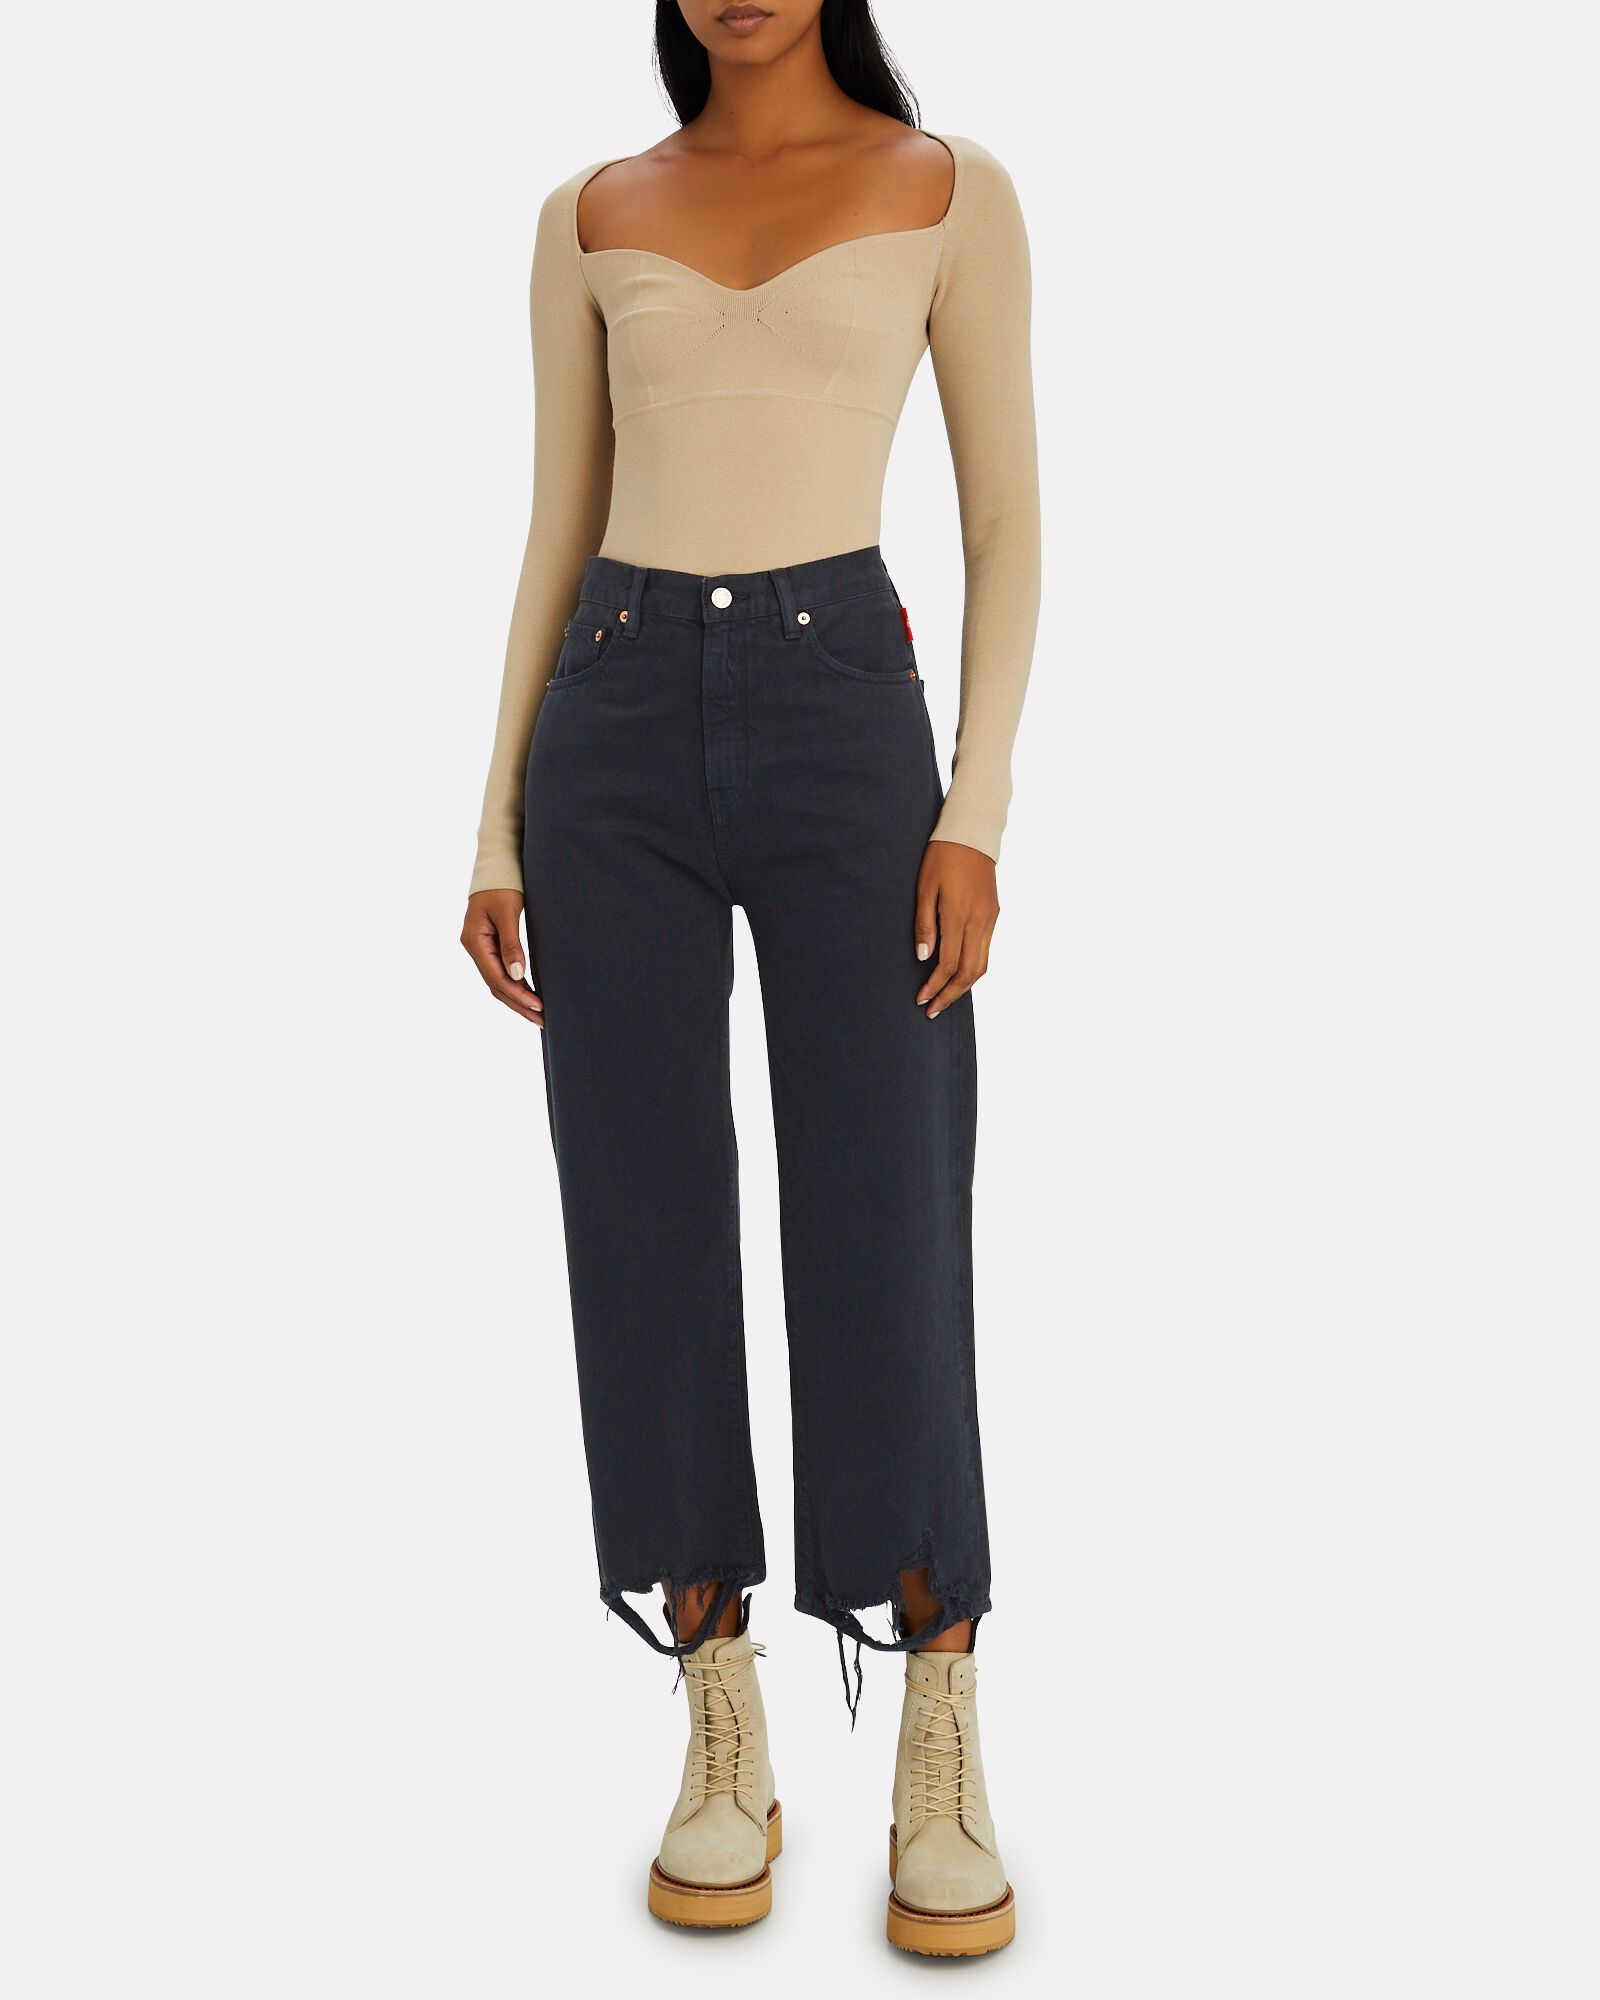 Pierce Distressed High-Rise Jeans, MIDNIGHT, hi-res